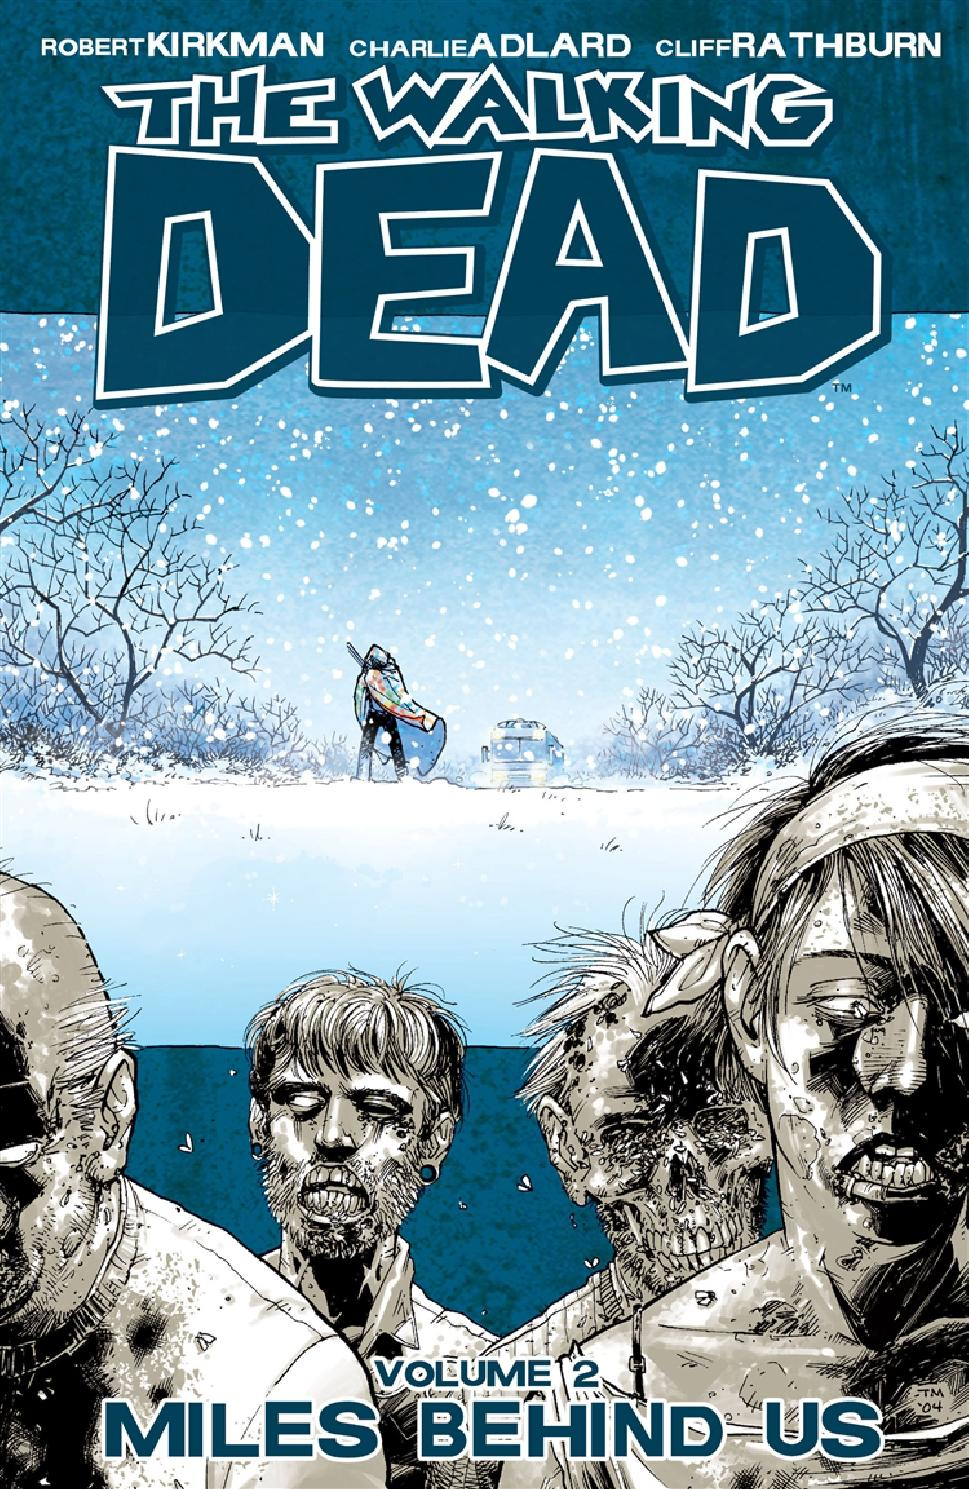 The Walking Dead - Magazine cover